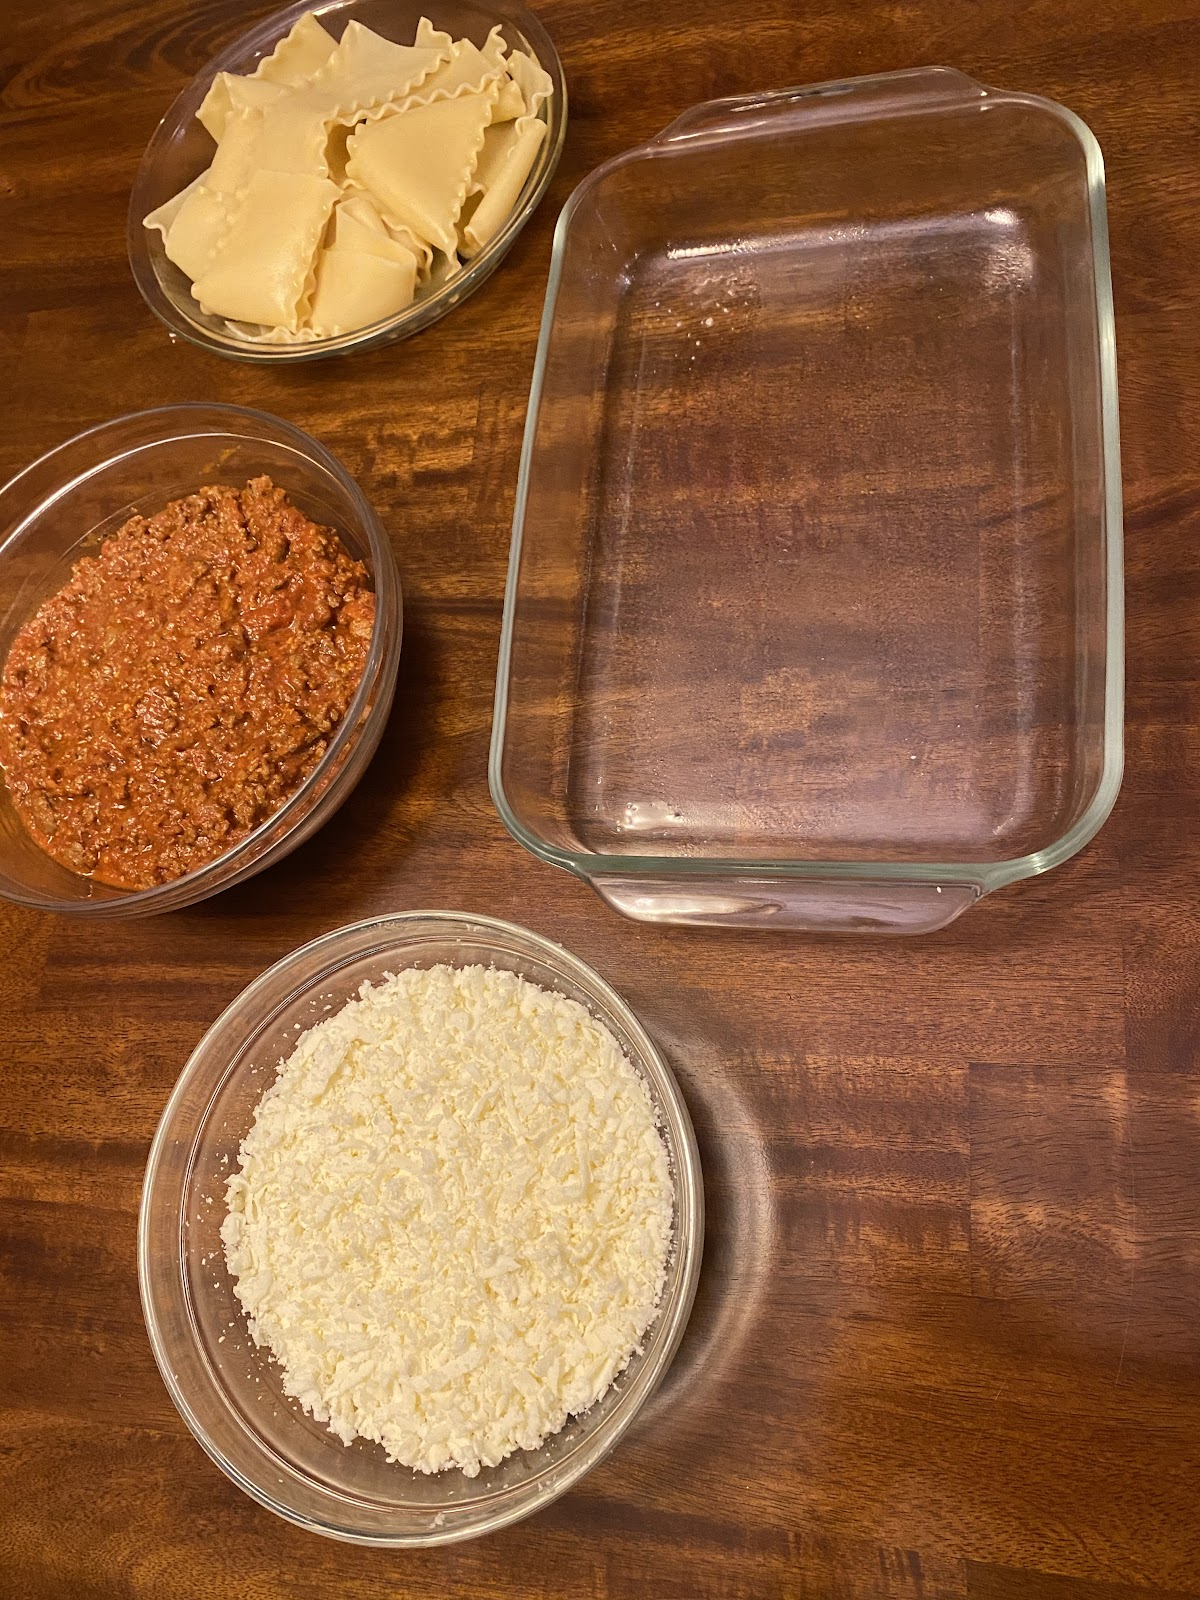 To assemble this no ricotta lasagna, I like to arrange all of my ingredients around my dish.